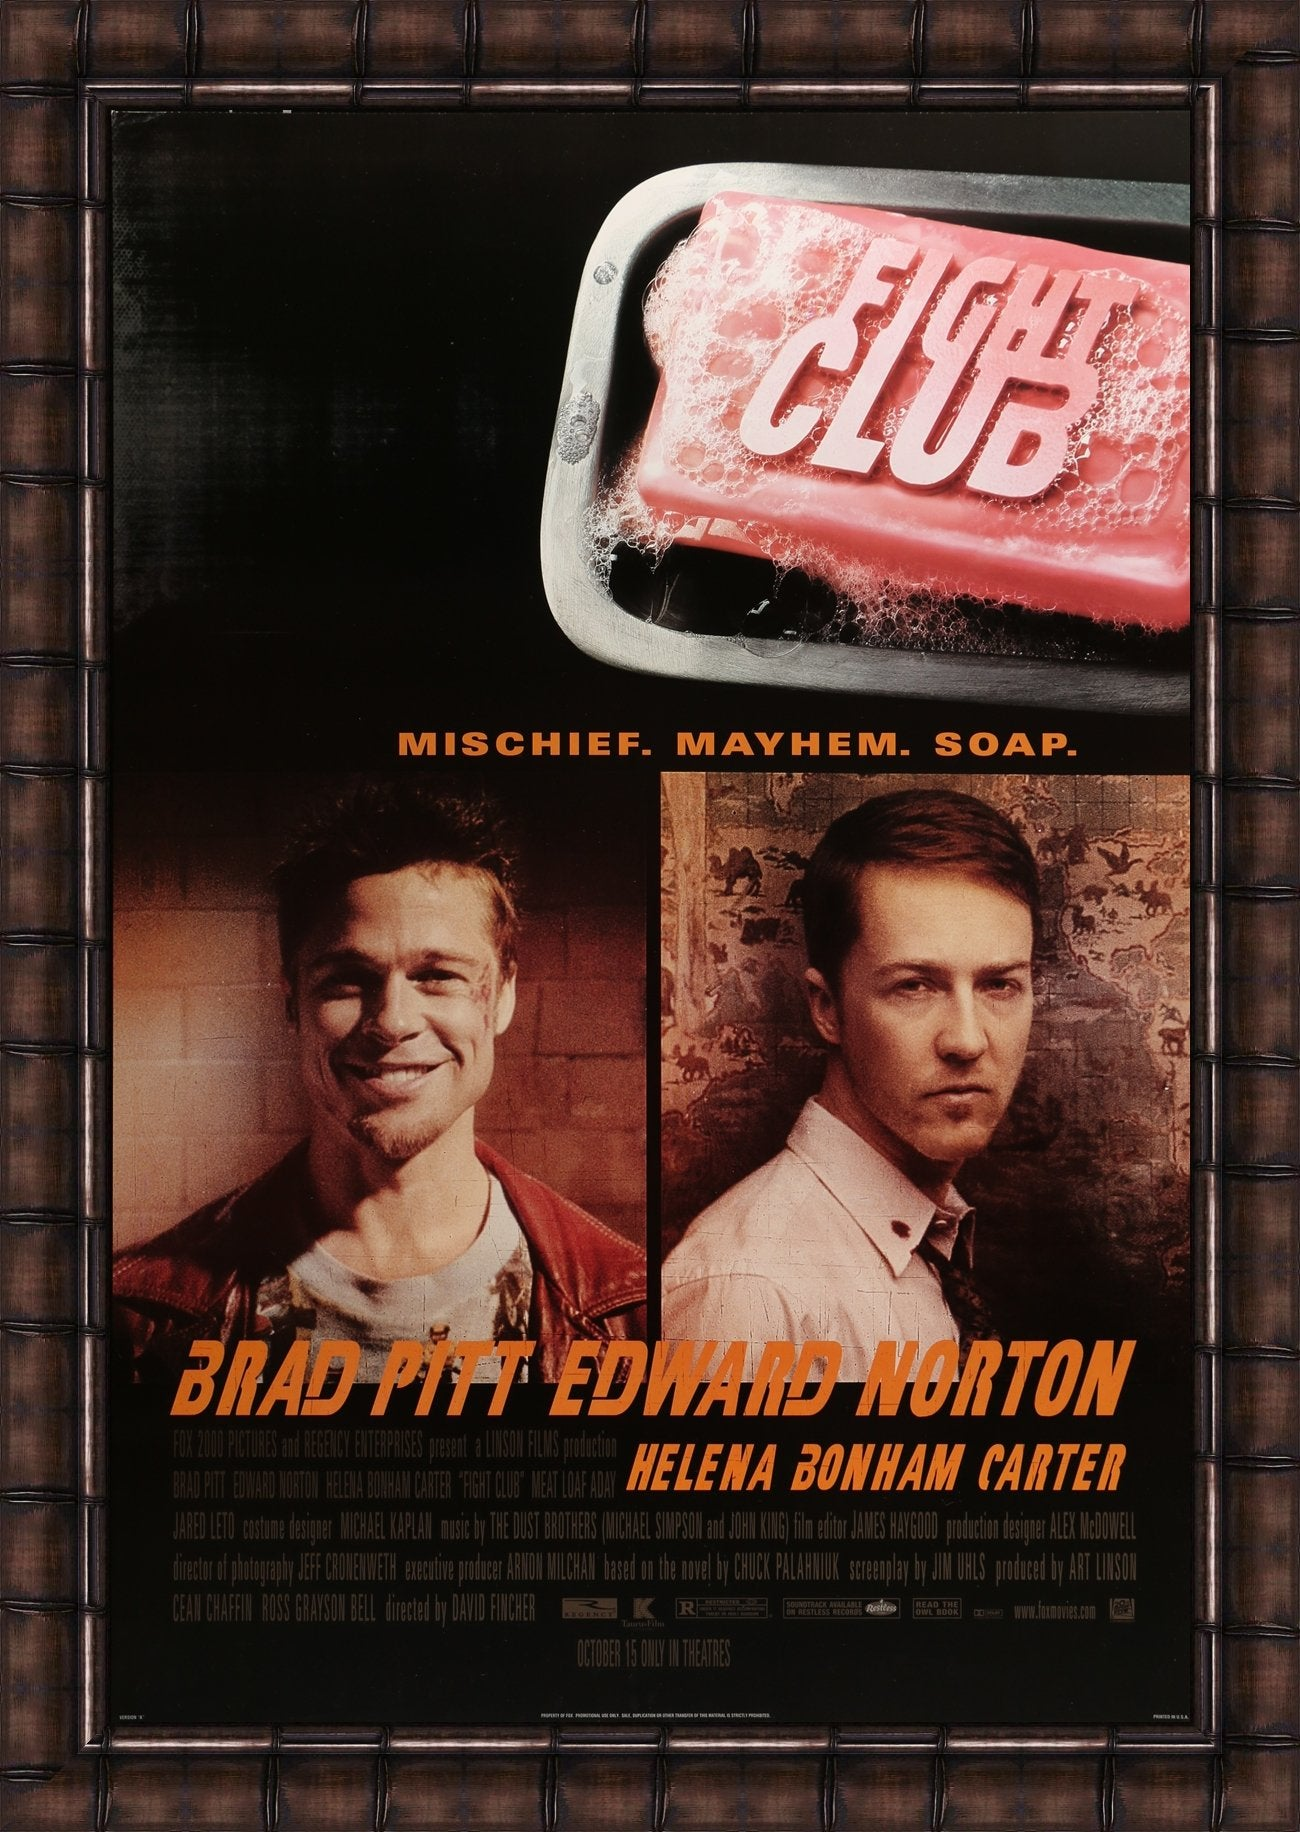 An original movie poster for the film Fight Club